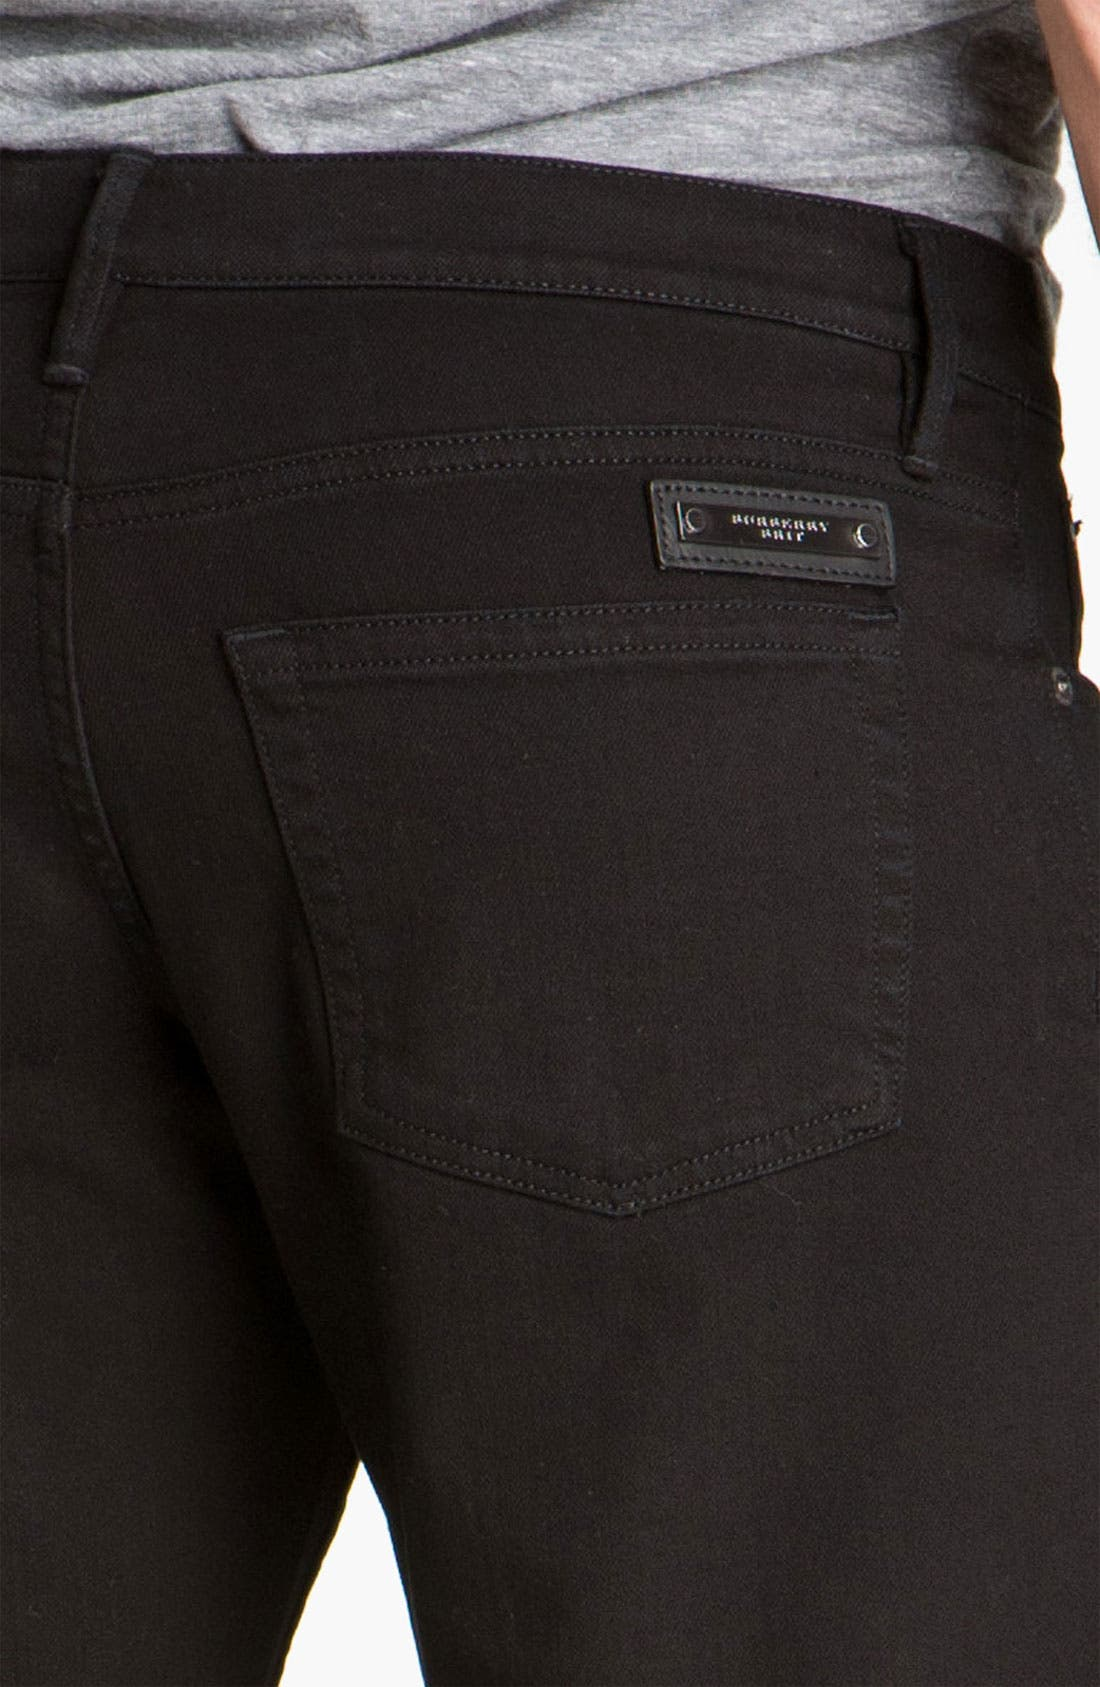 Alternate Image 4  - Burberry Brit Stretch Denim Jeans (Clean Black)